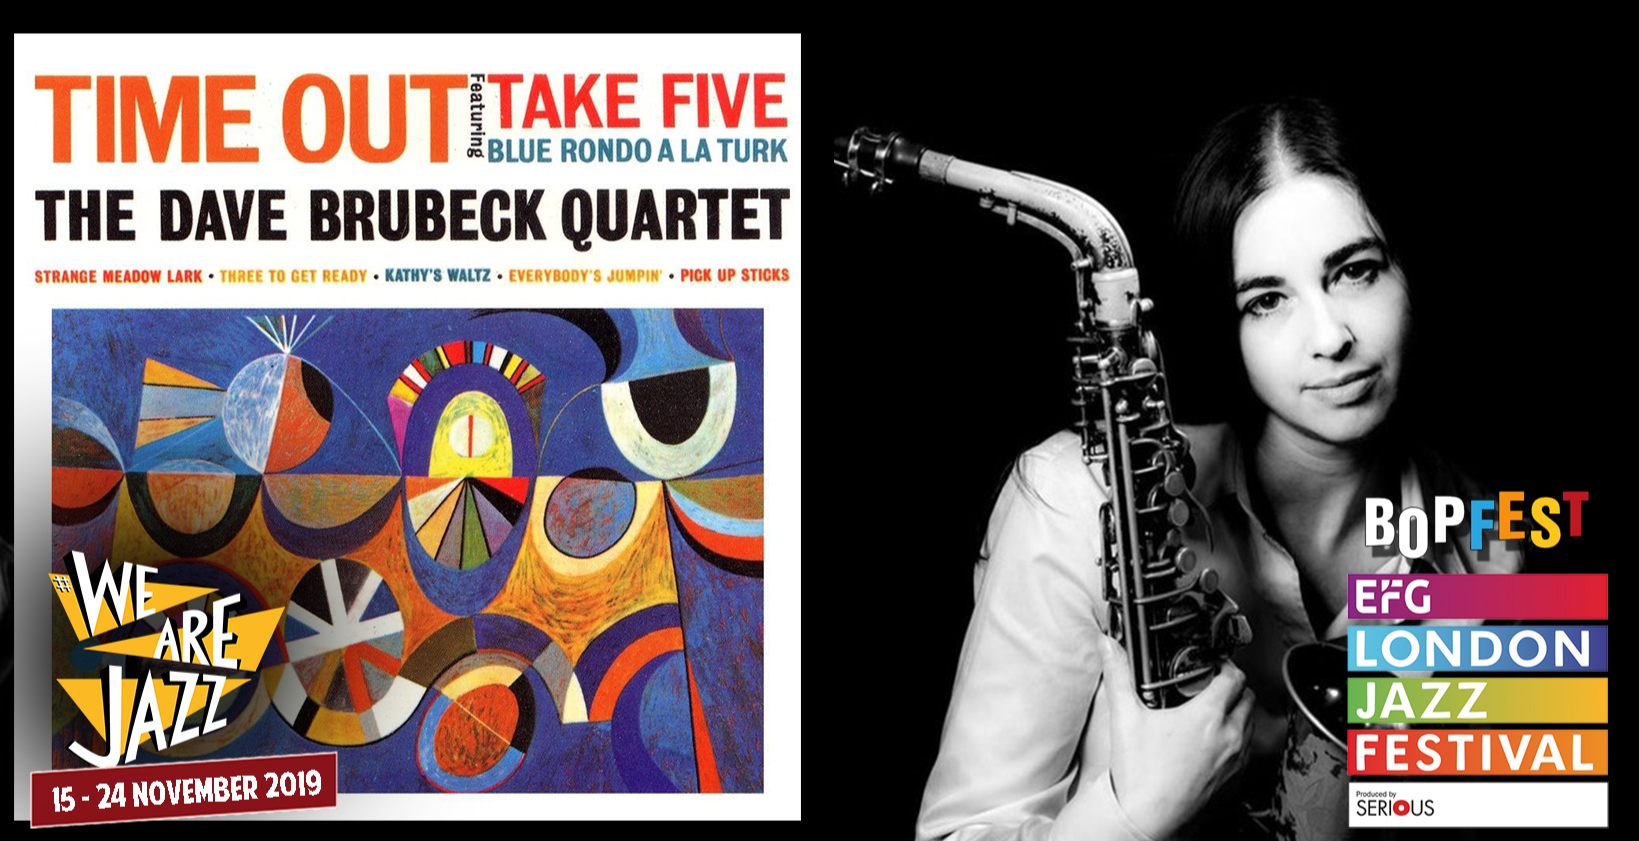 EFG LONDON JAZZ FEST & BOPFEST: Nick Tomalin & Allison Neale play Dave Brubeck's 'Time Out'